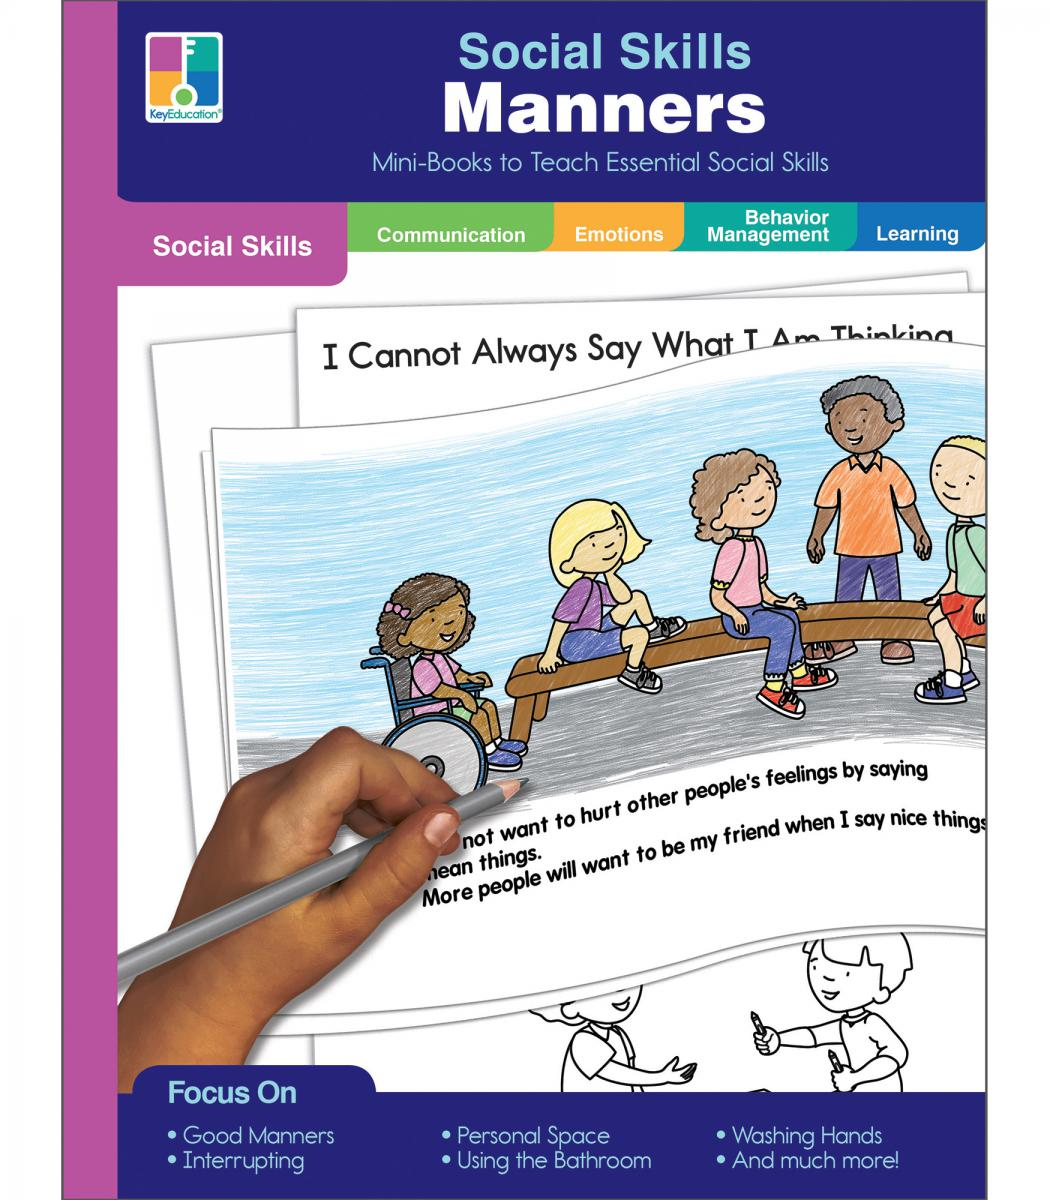 Social Skills: Manners